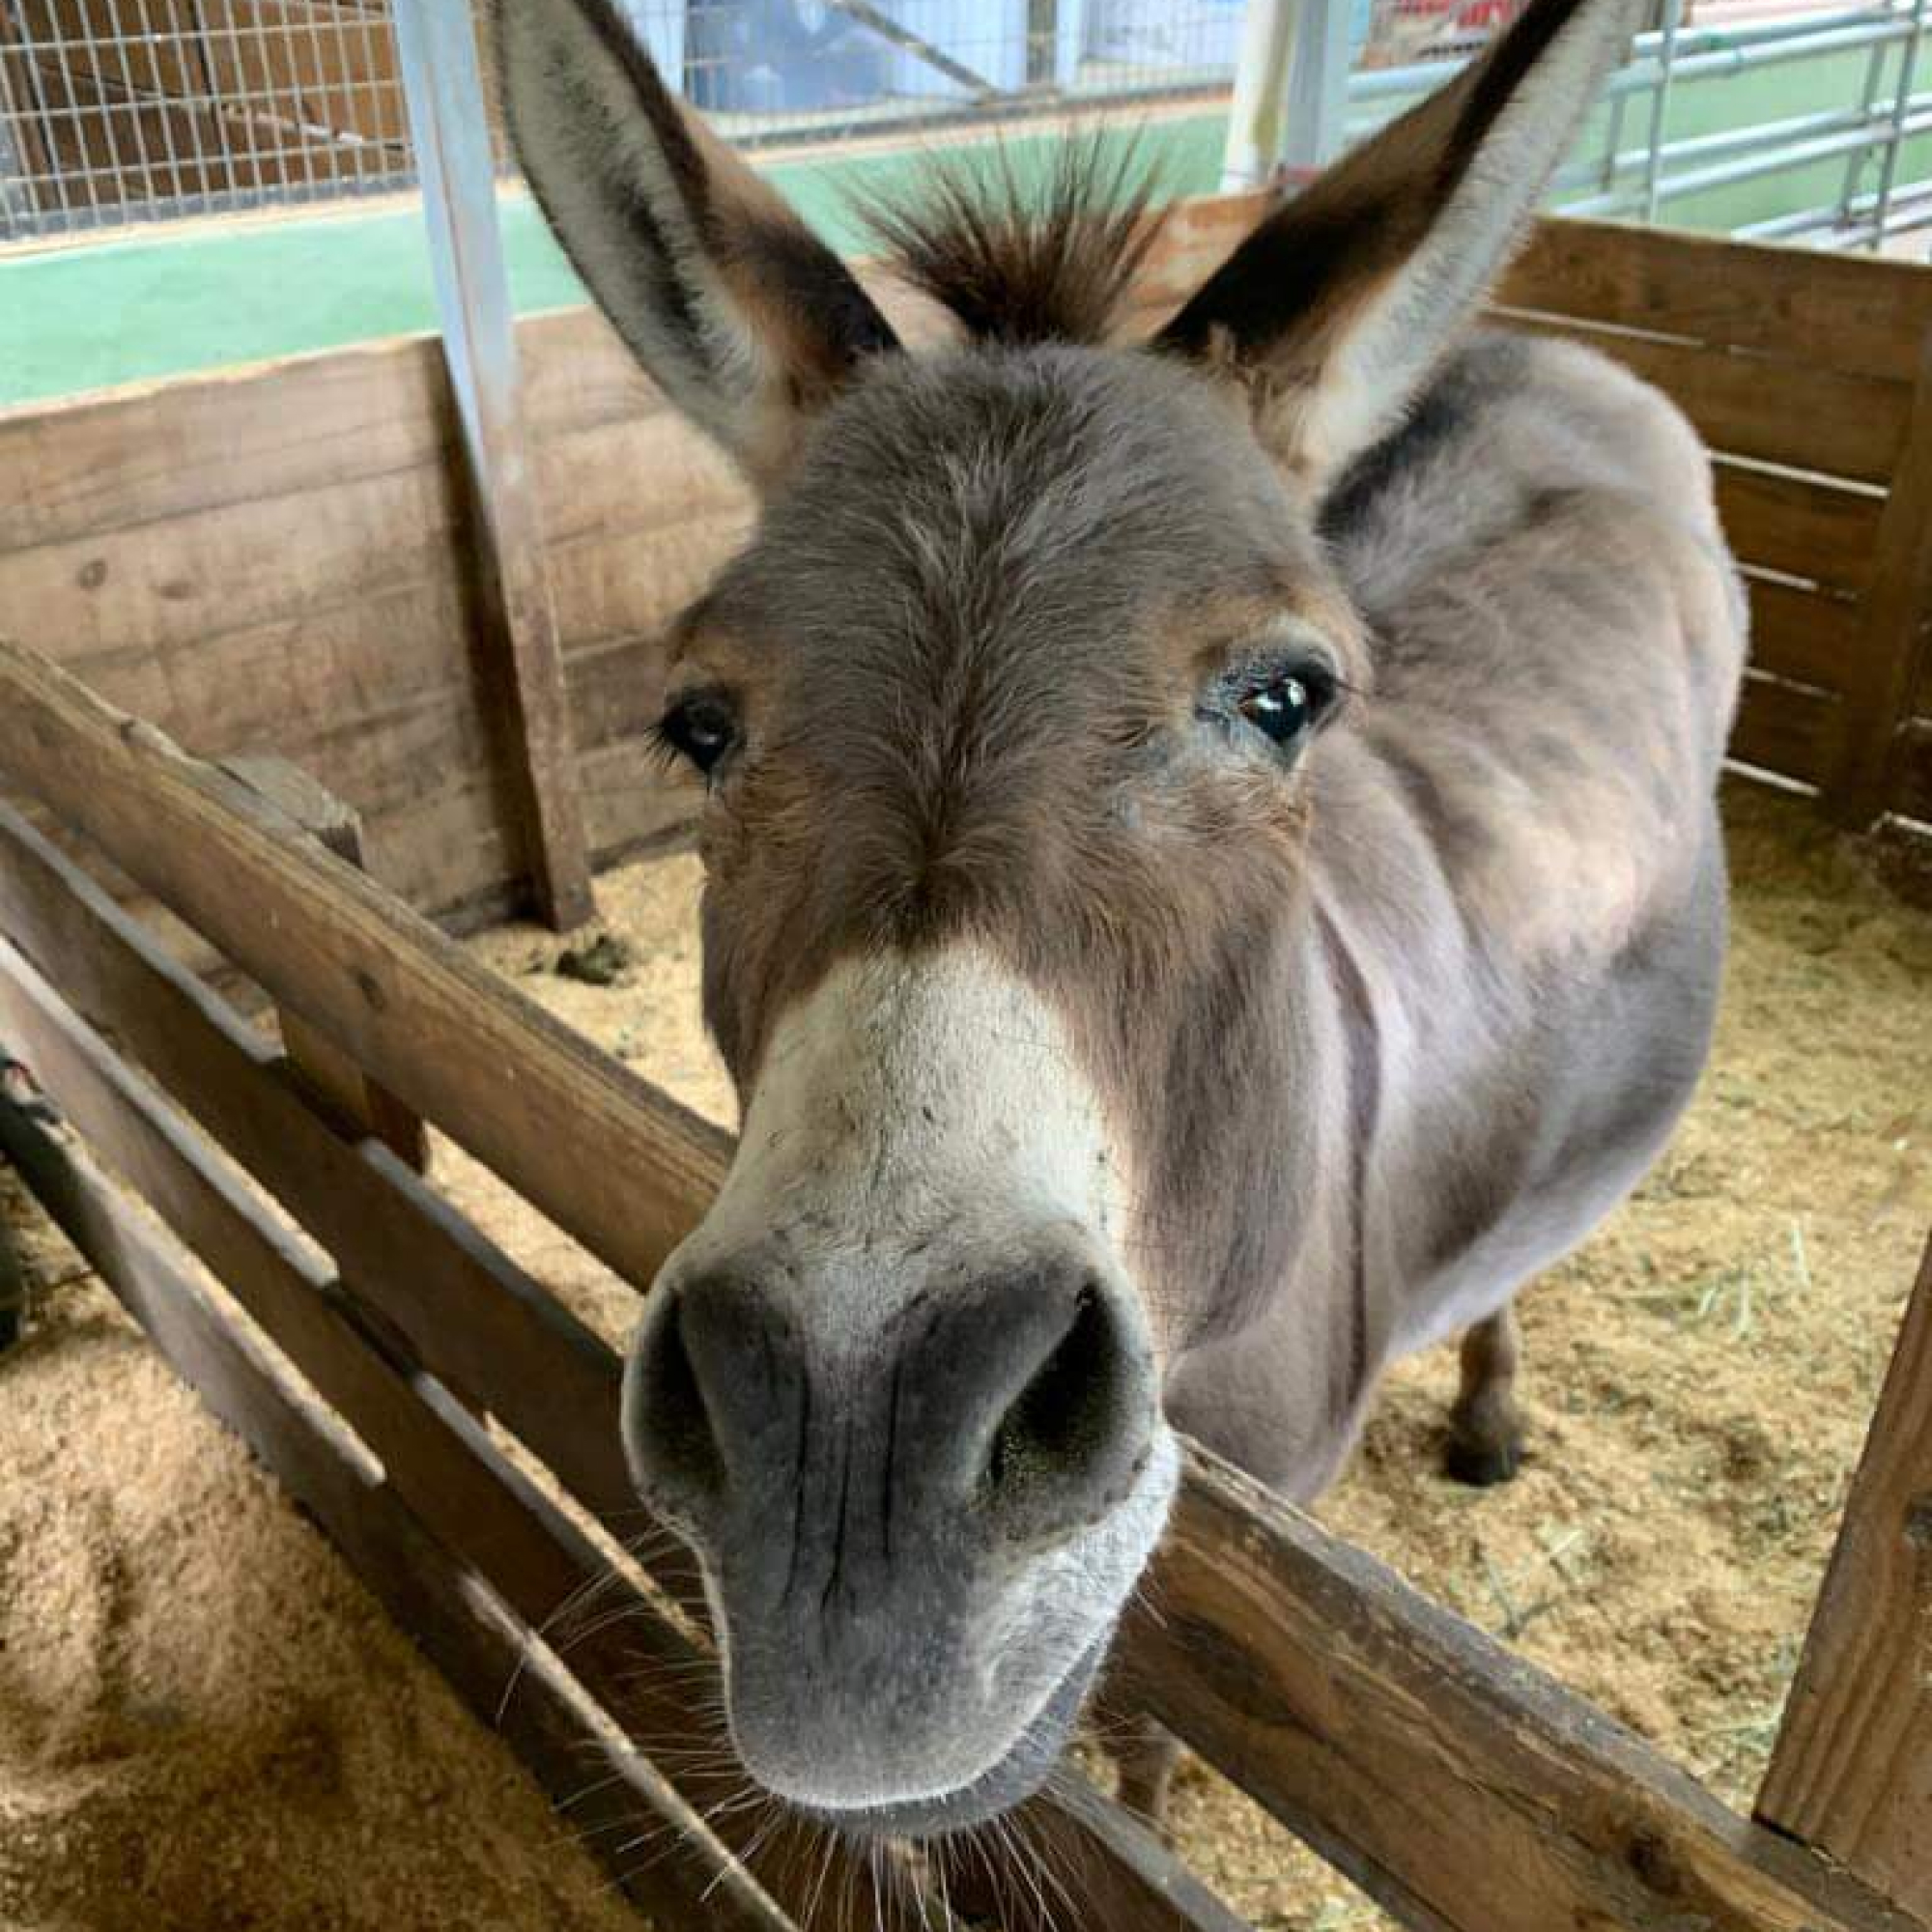 South Florida Society for the Prevention of Cruelty to Animals - Donkey over fence